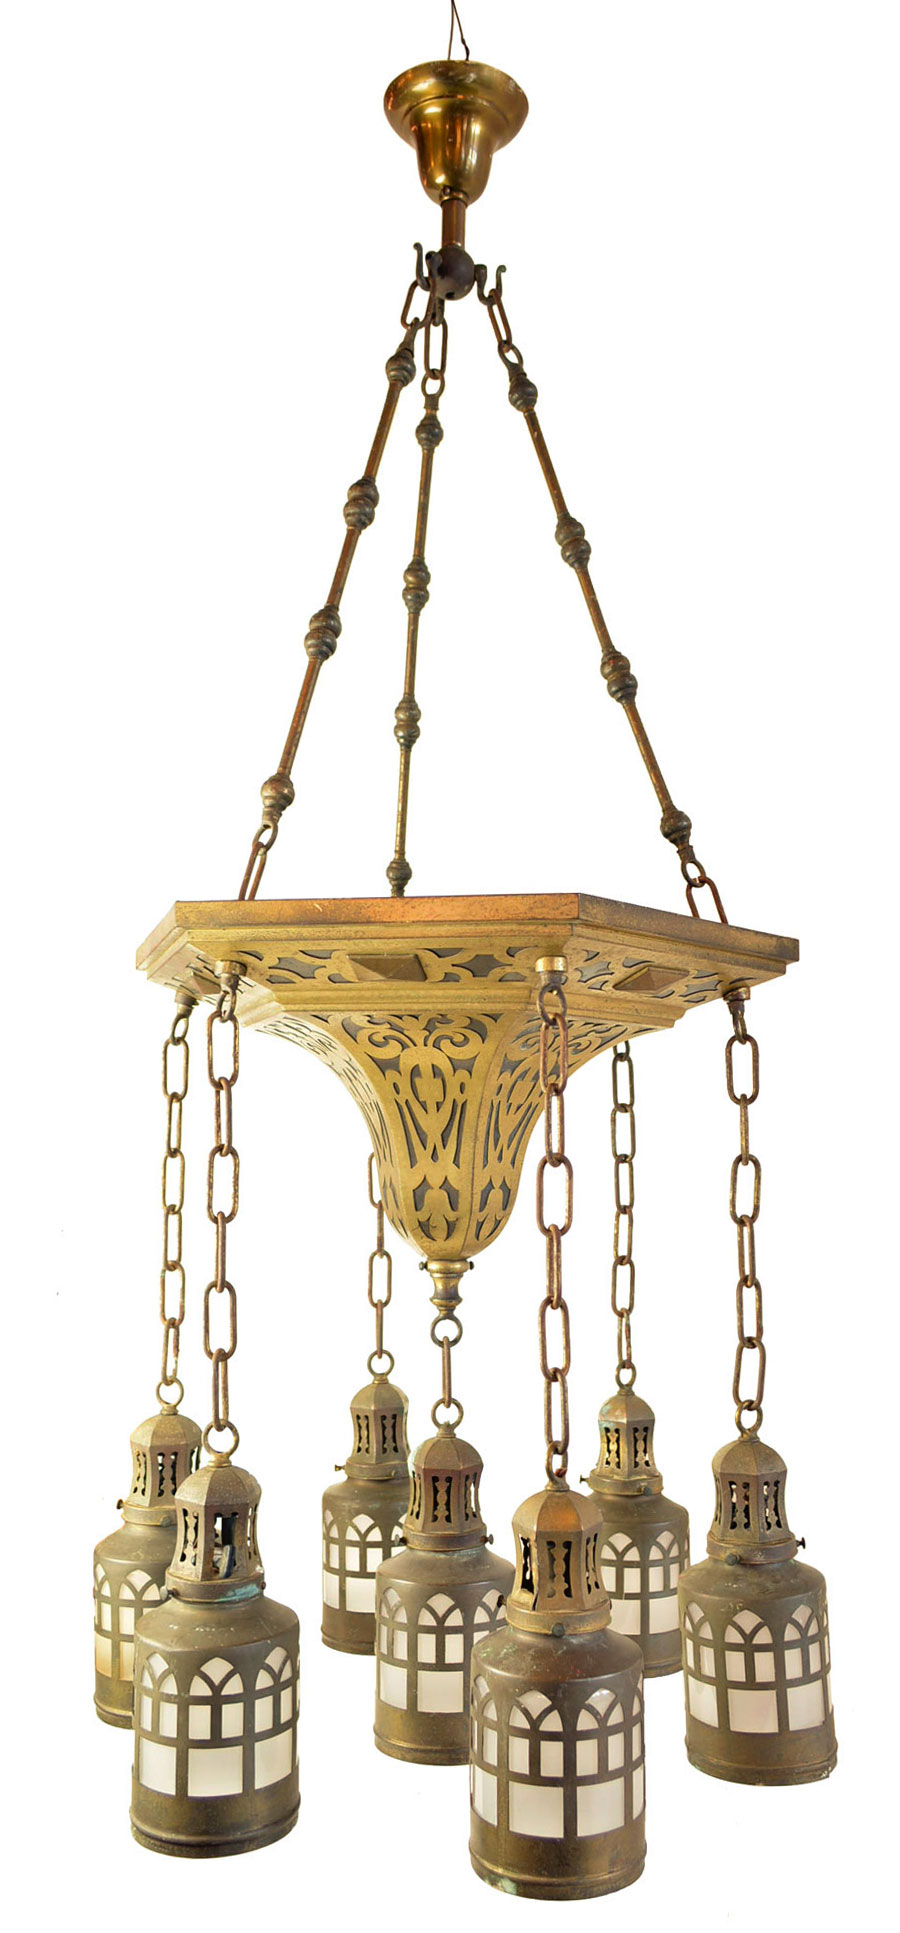 7-LIGHT BRASS FILIGREE CHANDELIER